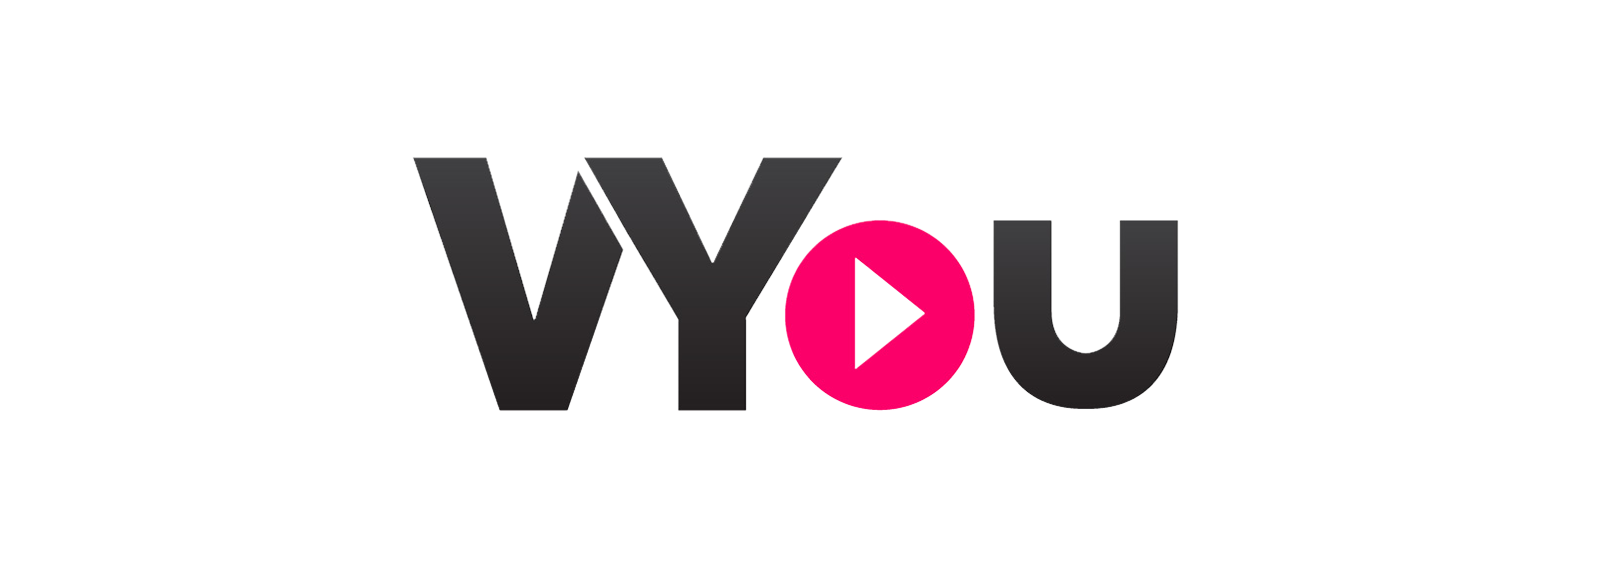 0_1_0000s_0005_vYou.png